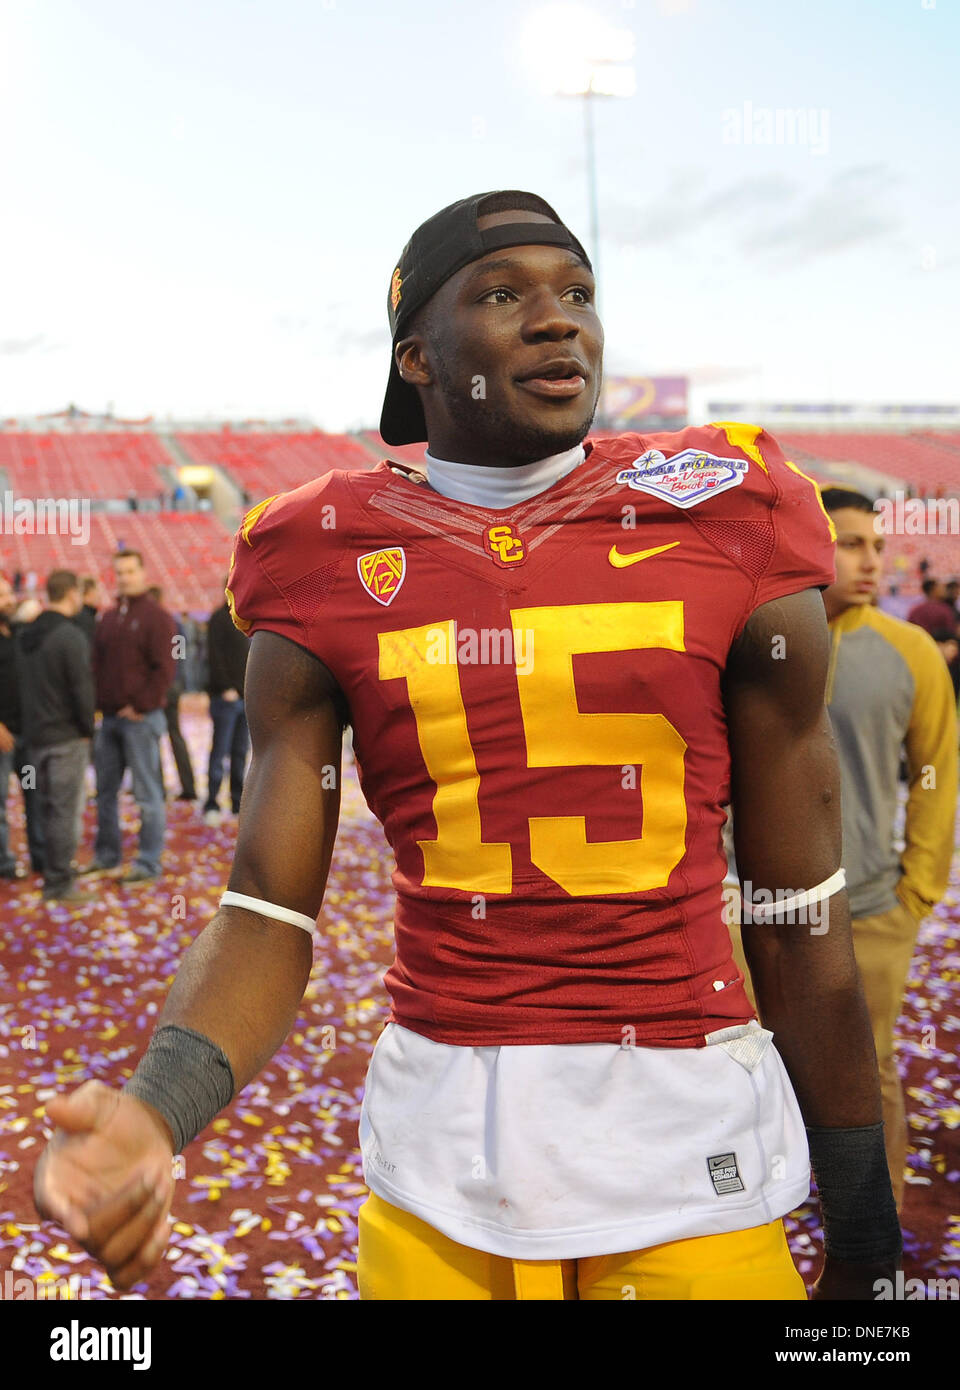 f26dad421dc USC Trojans wide receiver (15) Nelson Agholor talks to fans after USC  defeated the 21st ranked Fresno State 45-20.during the USC Trojans college  football ...